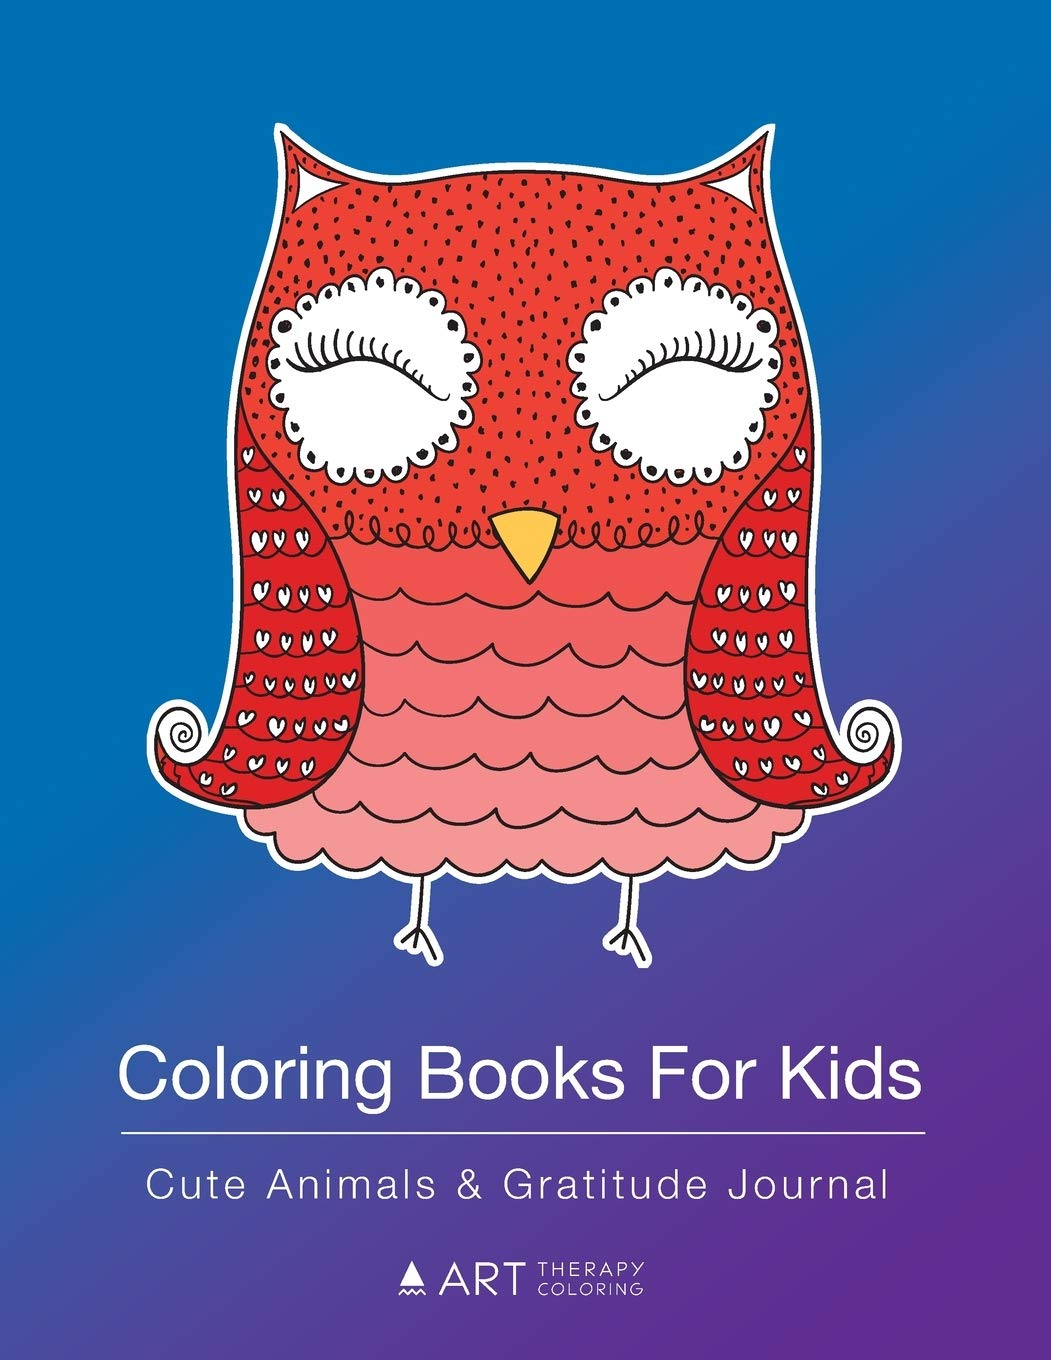 Coloring Books For Kids: Cute Animals & Gratitude Journal: Colouring Pages & Gratitude Journal In One, Detailed Cute Animal Designs For Boys, Girls, Ages 4-8, 9-12; Personal Growth & Mindfulness